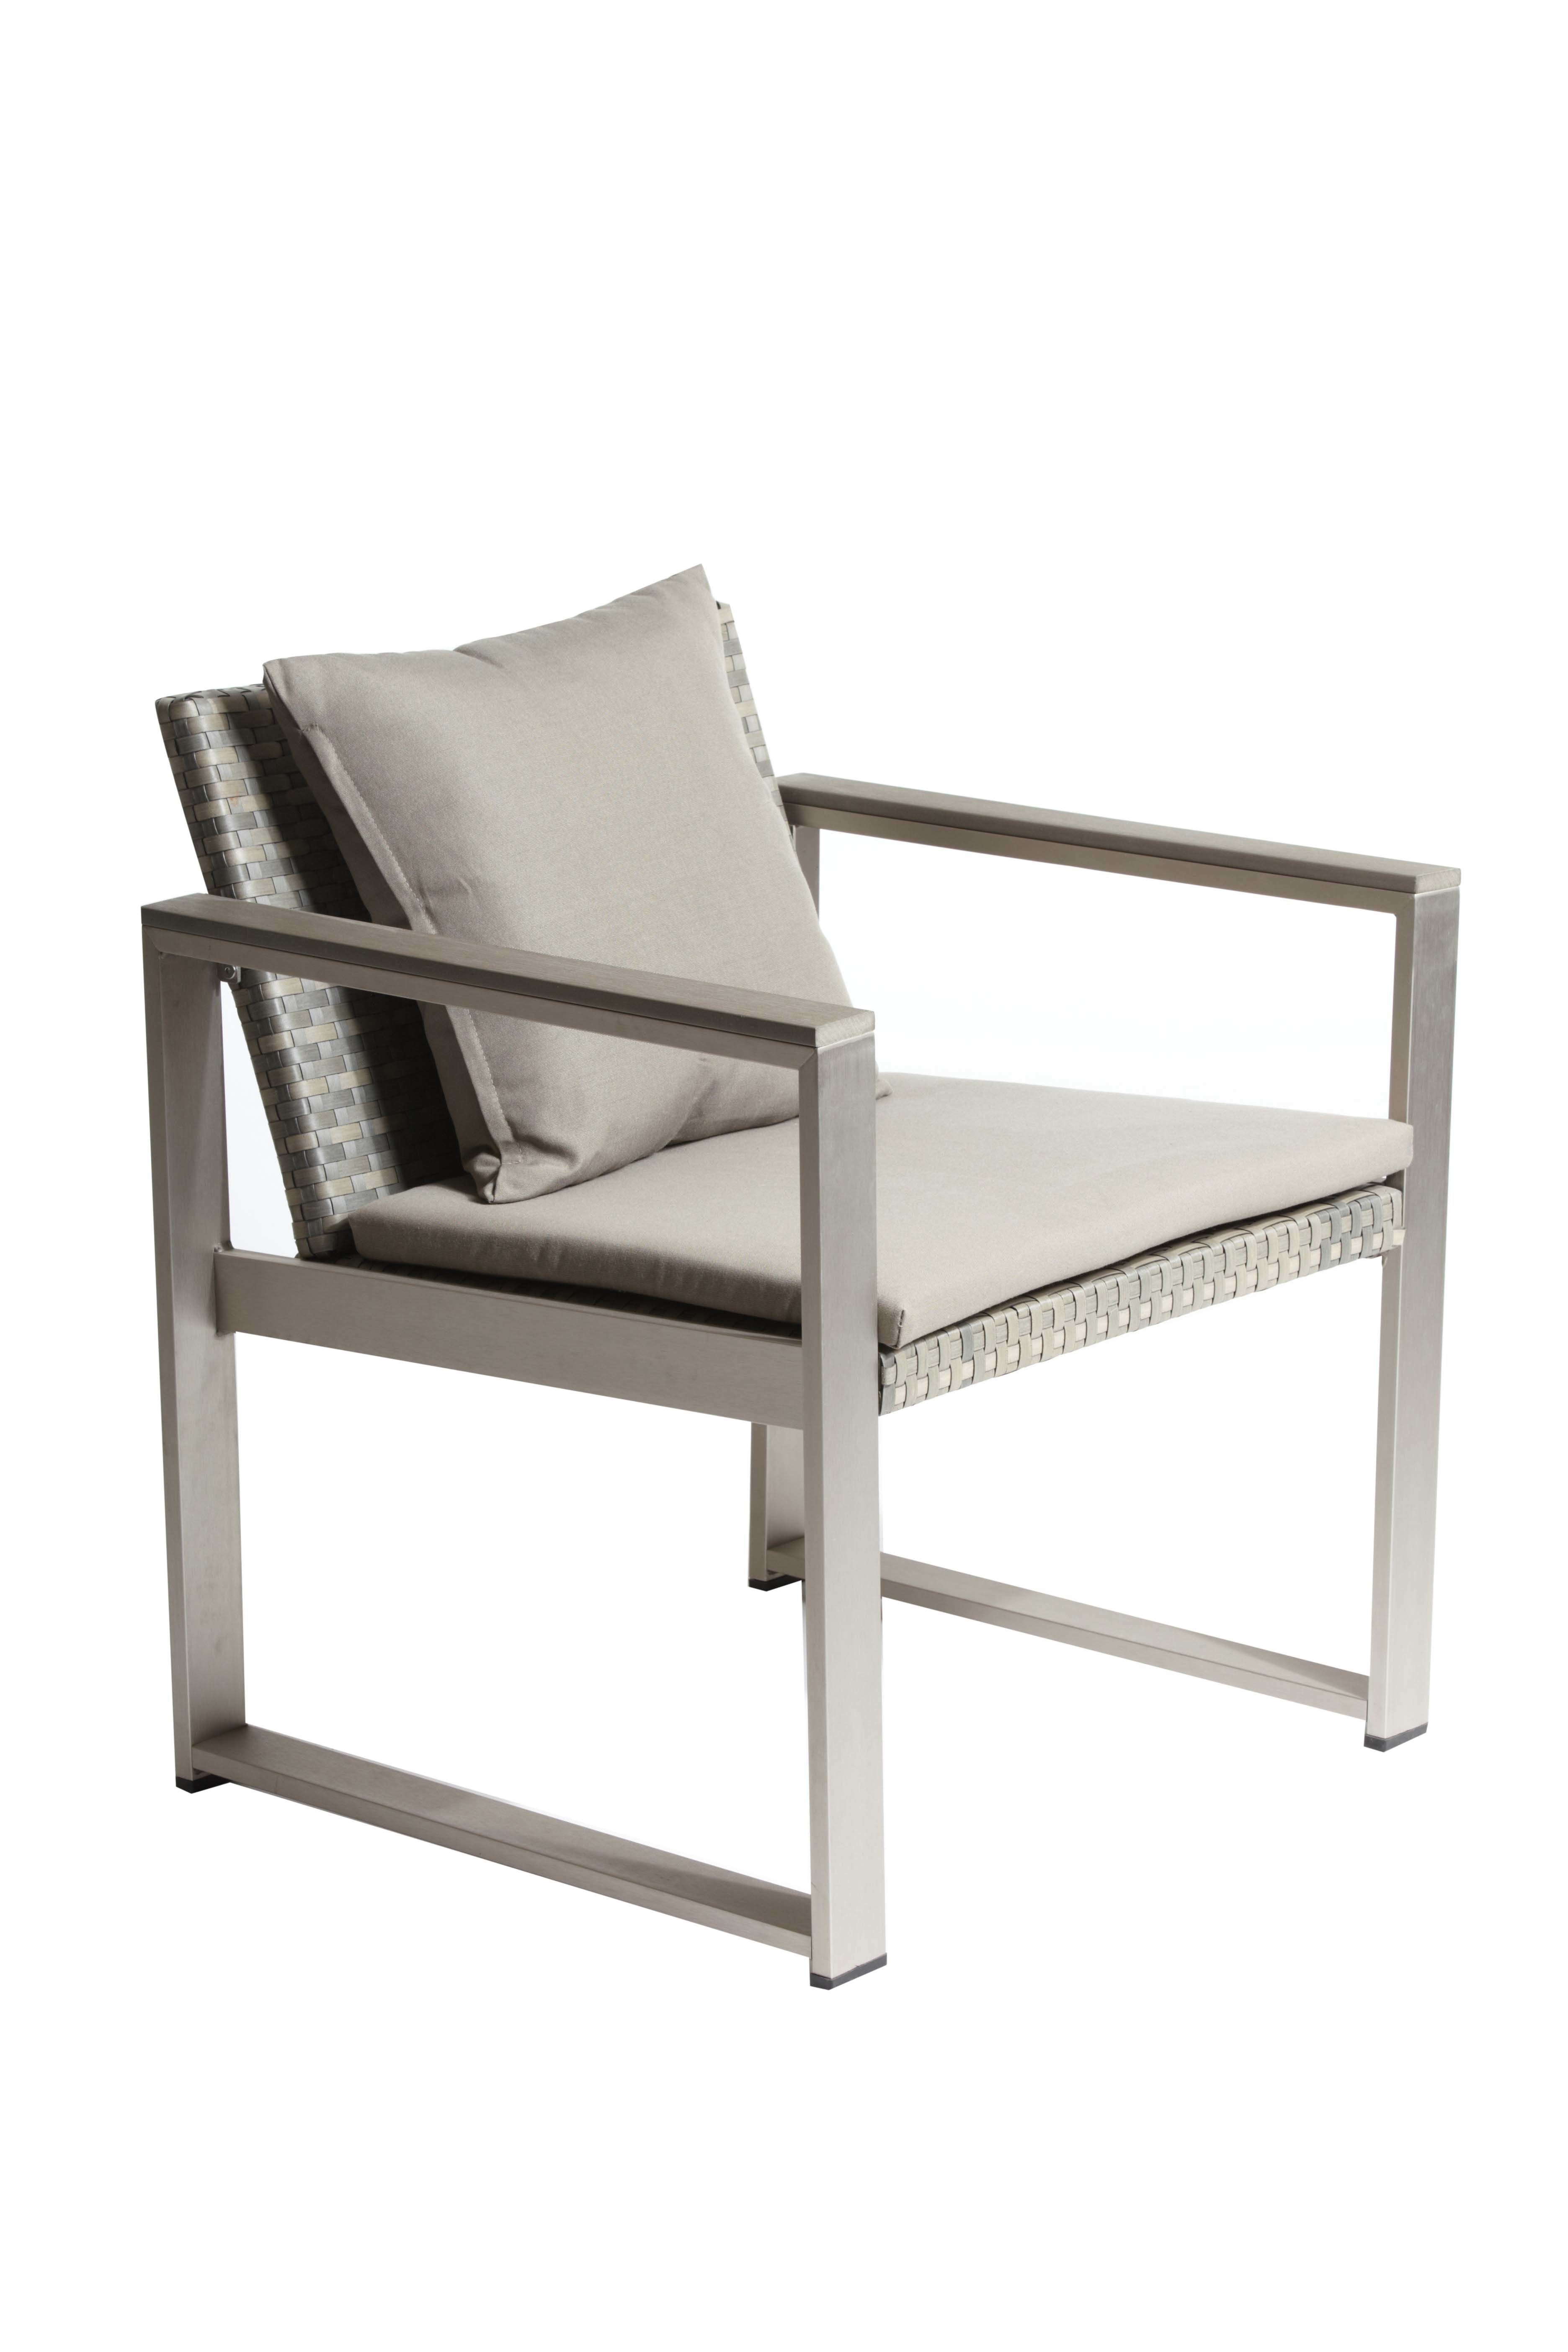 Most Popular Chstr Loveseat With Cushions In Sylvania Outdoor Loveseats (View 9 of 20)